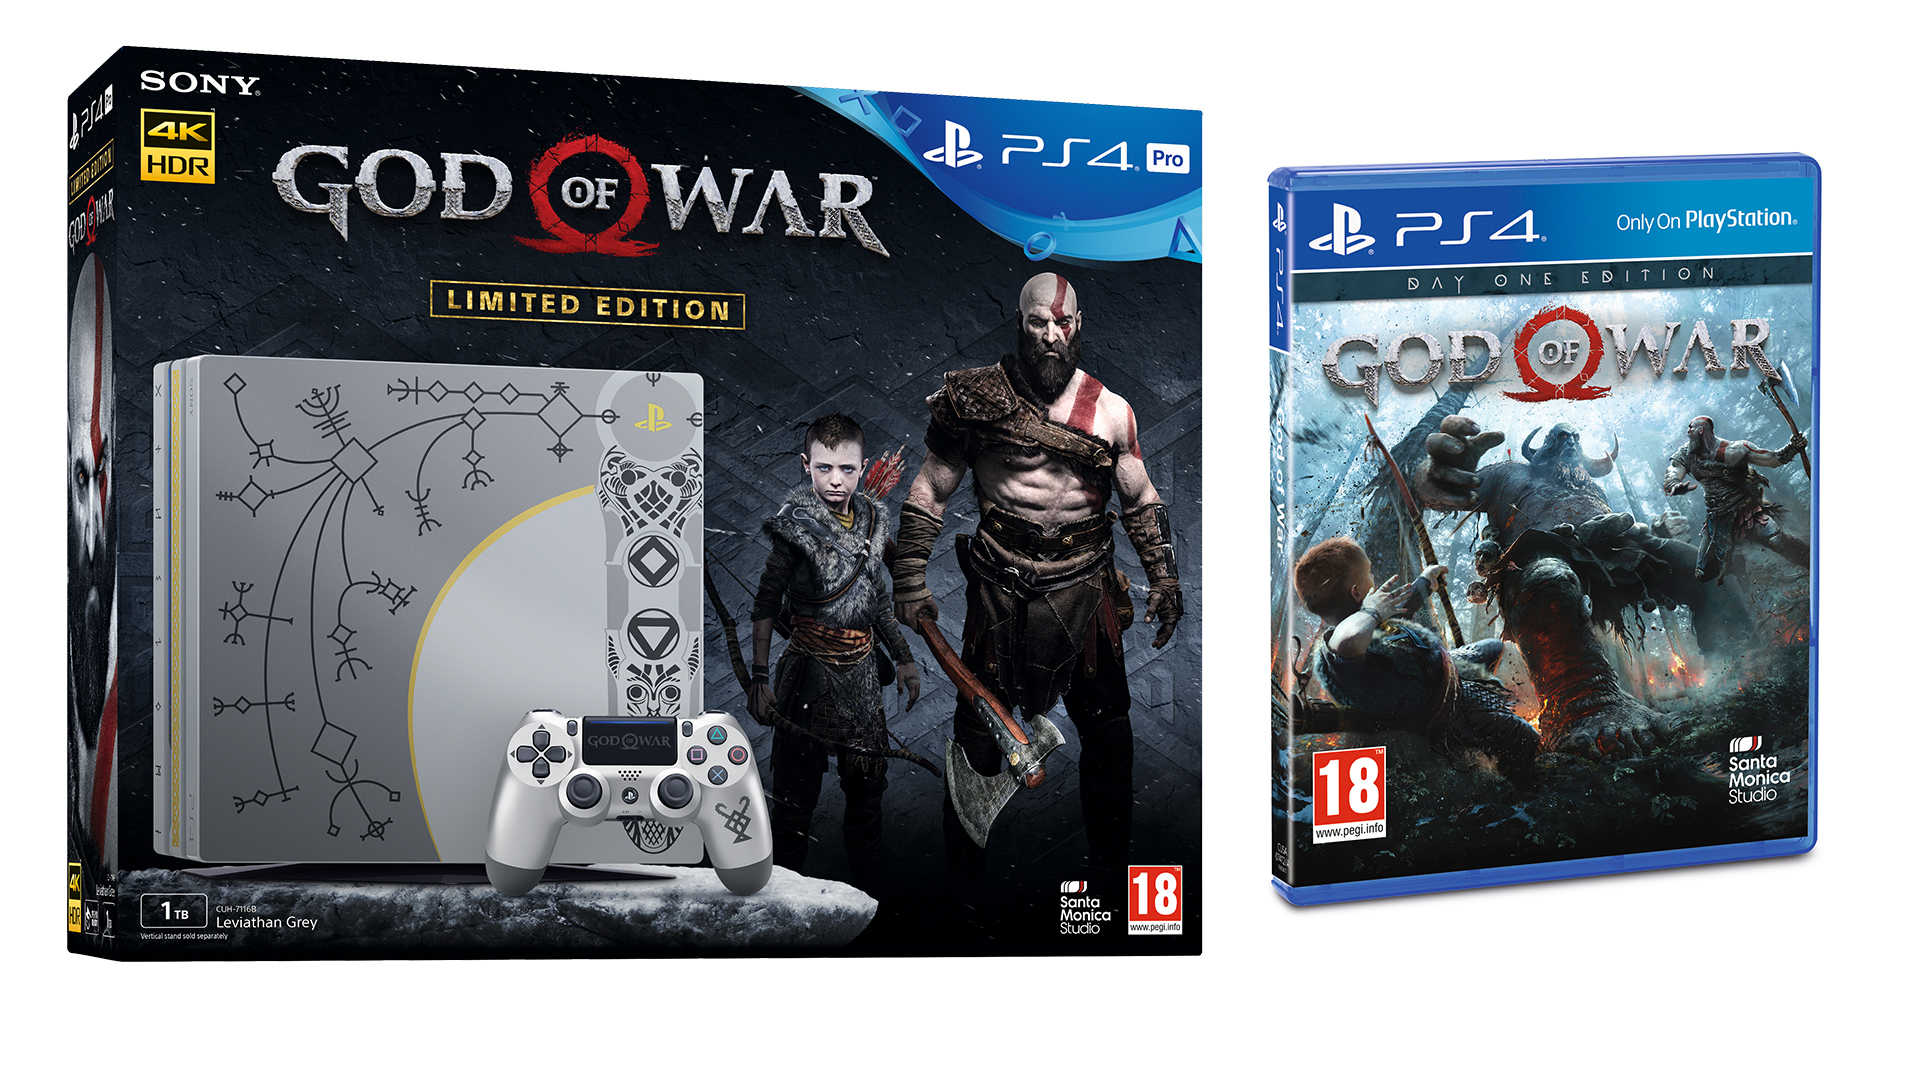 God_of_war_reprographics_packshot_artwork copy